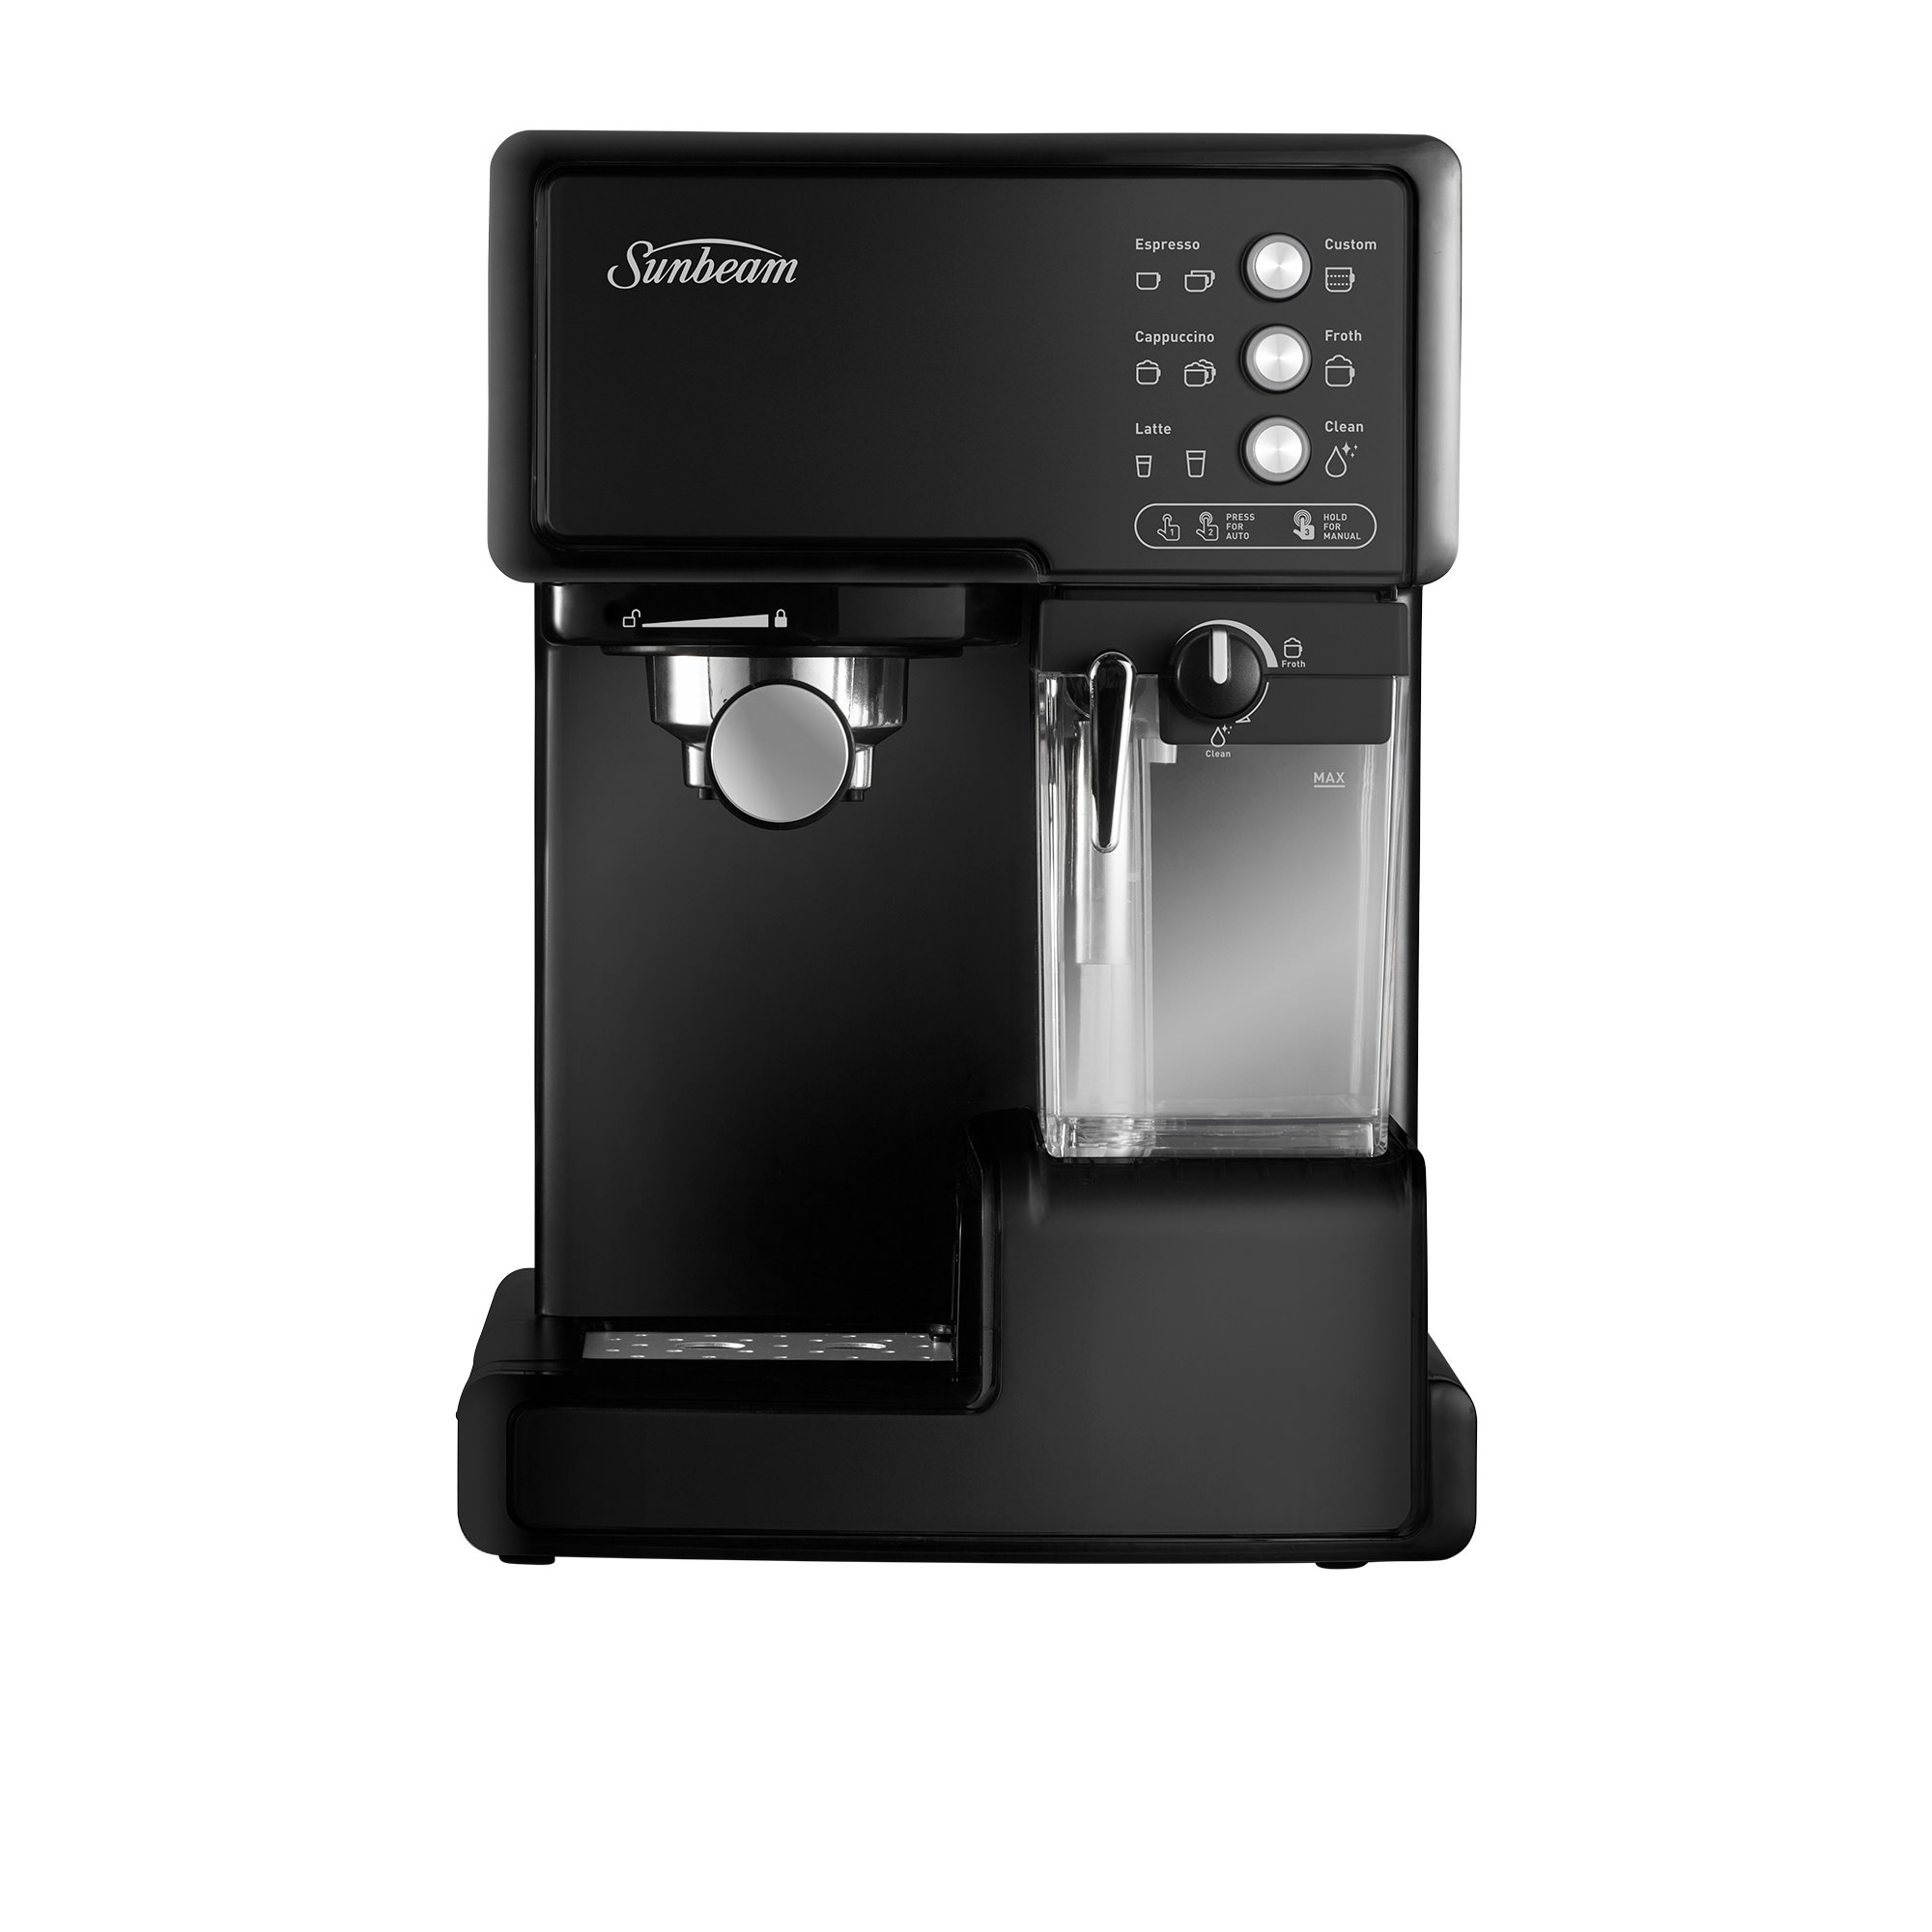 Sunbeam Cafe Barista Coffee Machine Black